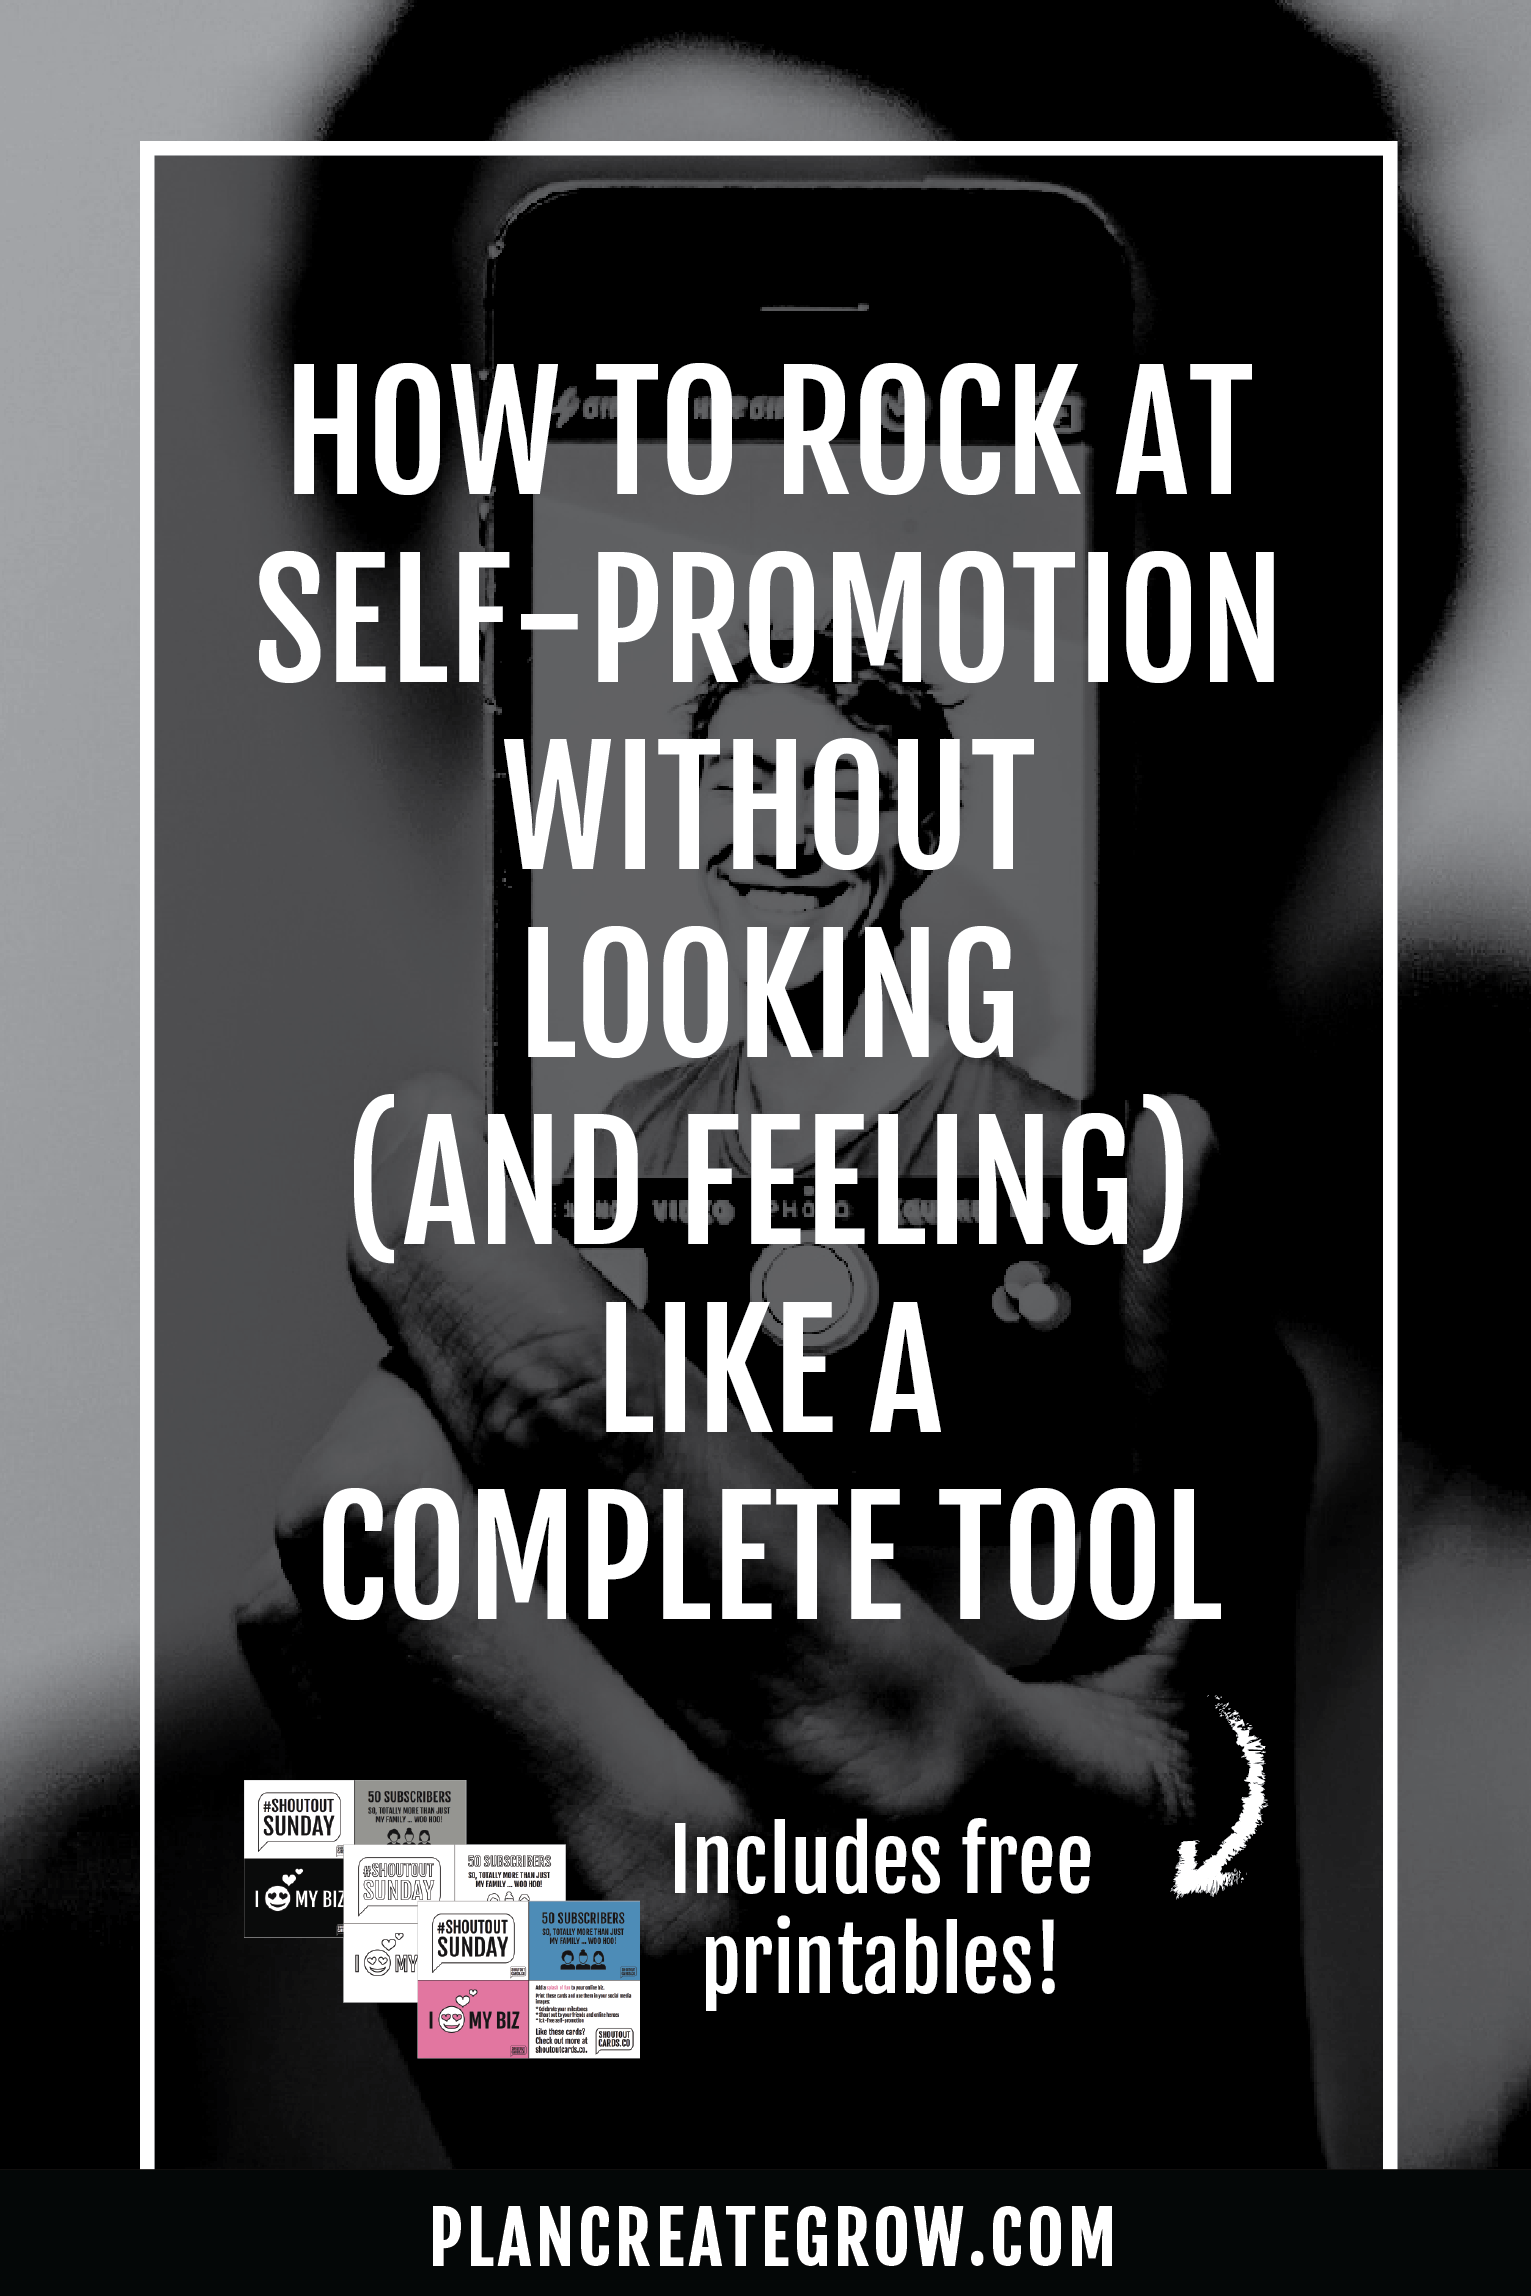 How to rock self-promotion without looking like a tool-01.png